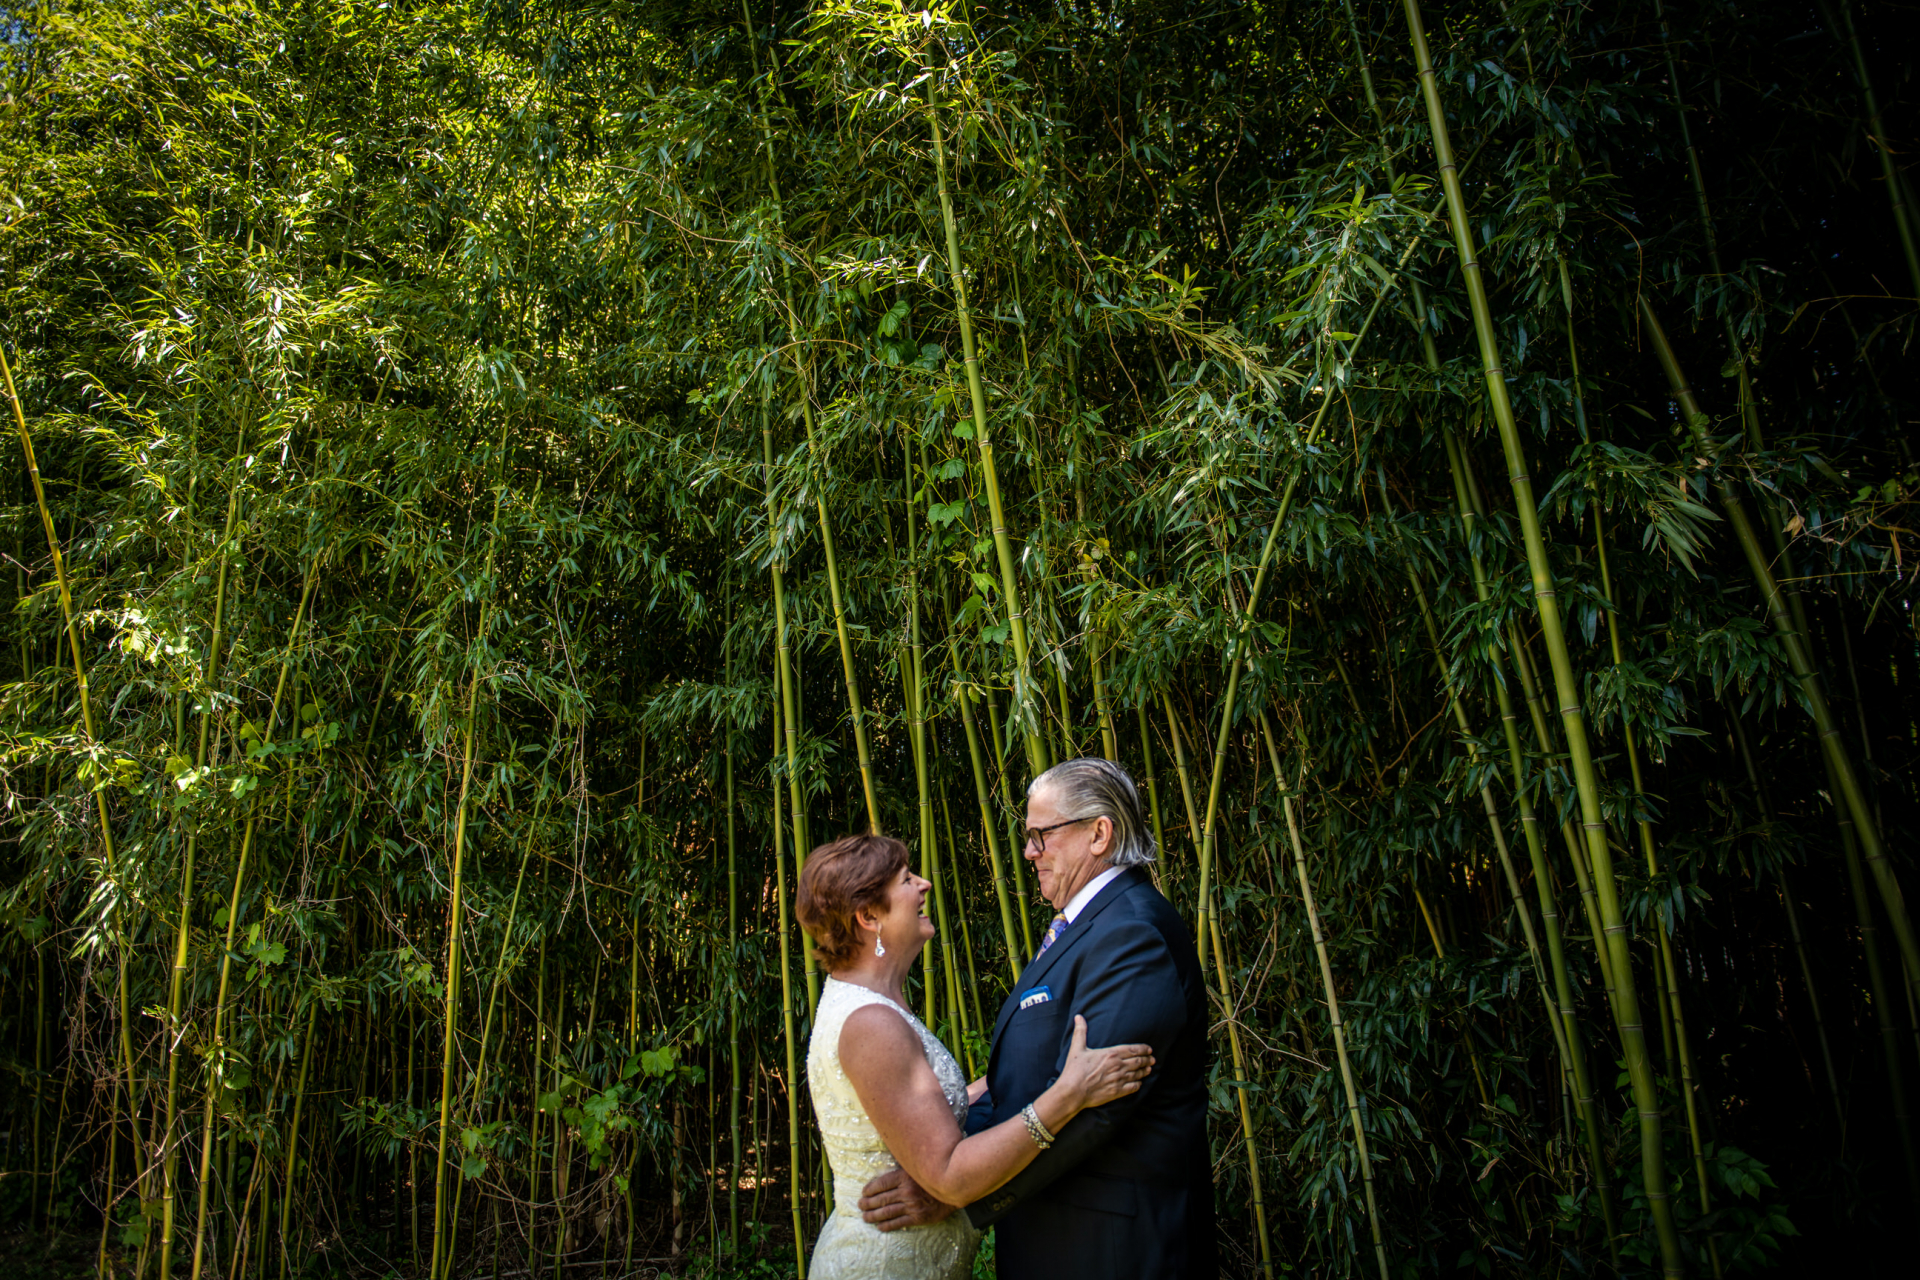 Maryland Backyard Elopement Portrait | beautiful bamboo in their backyard for portraits